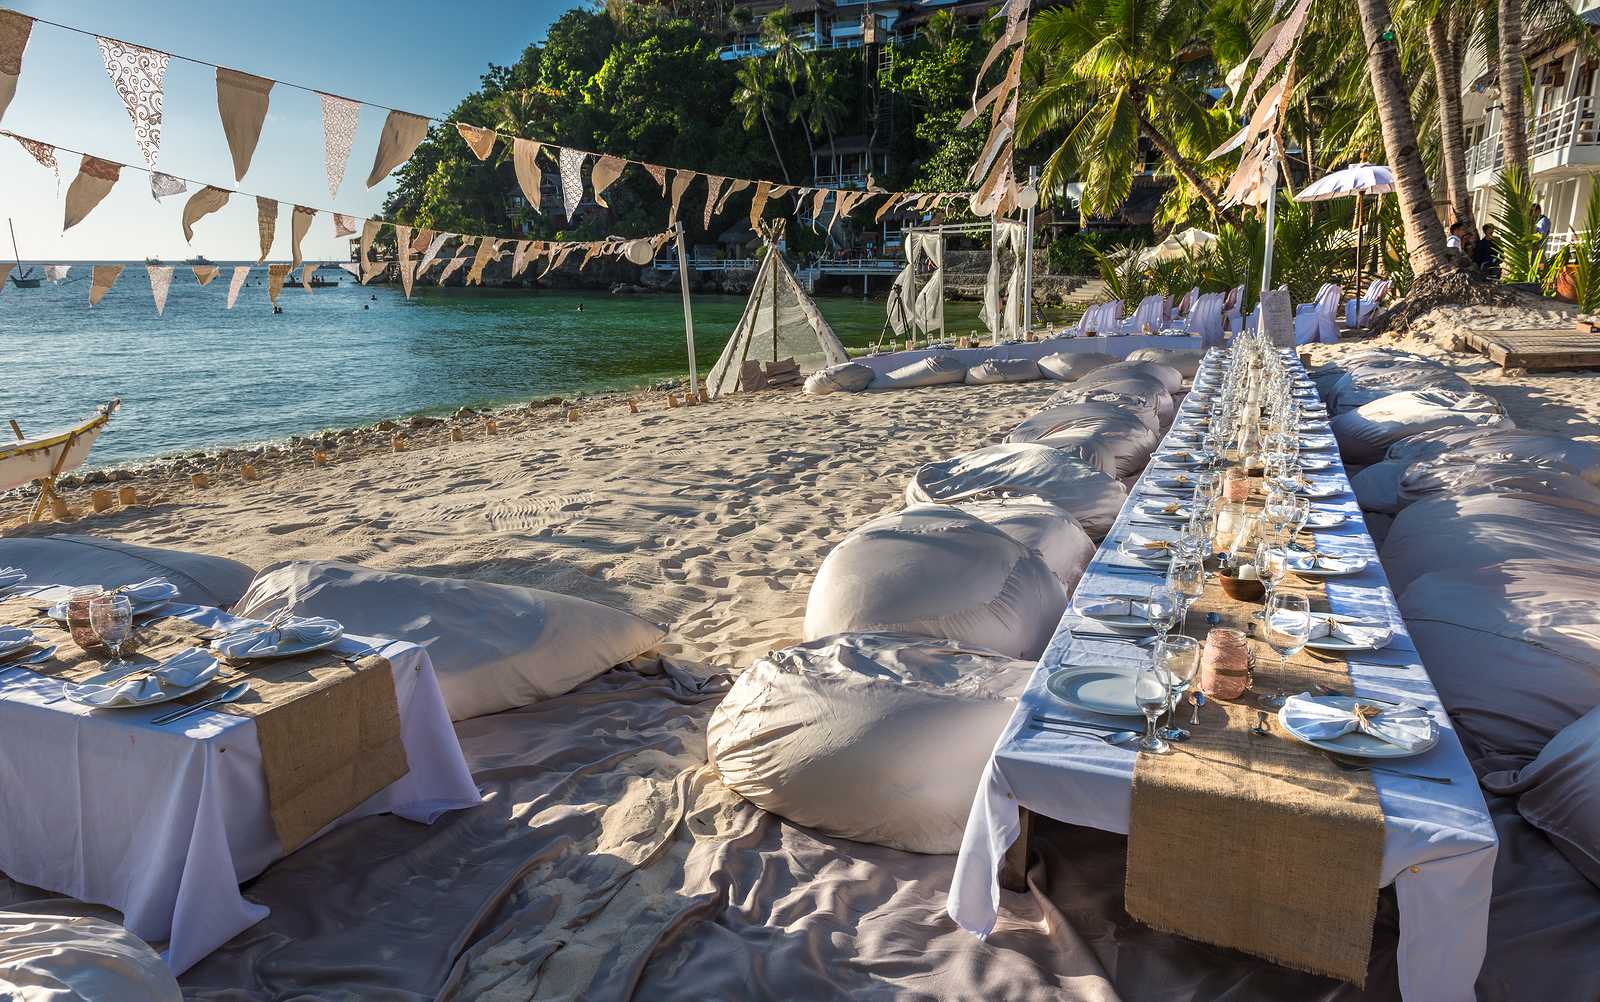 Beach picnic styled reception